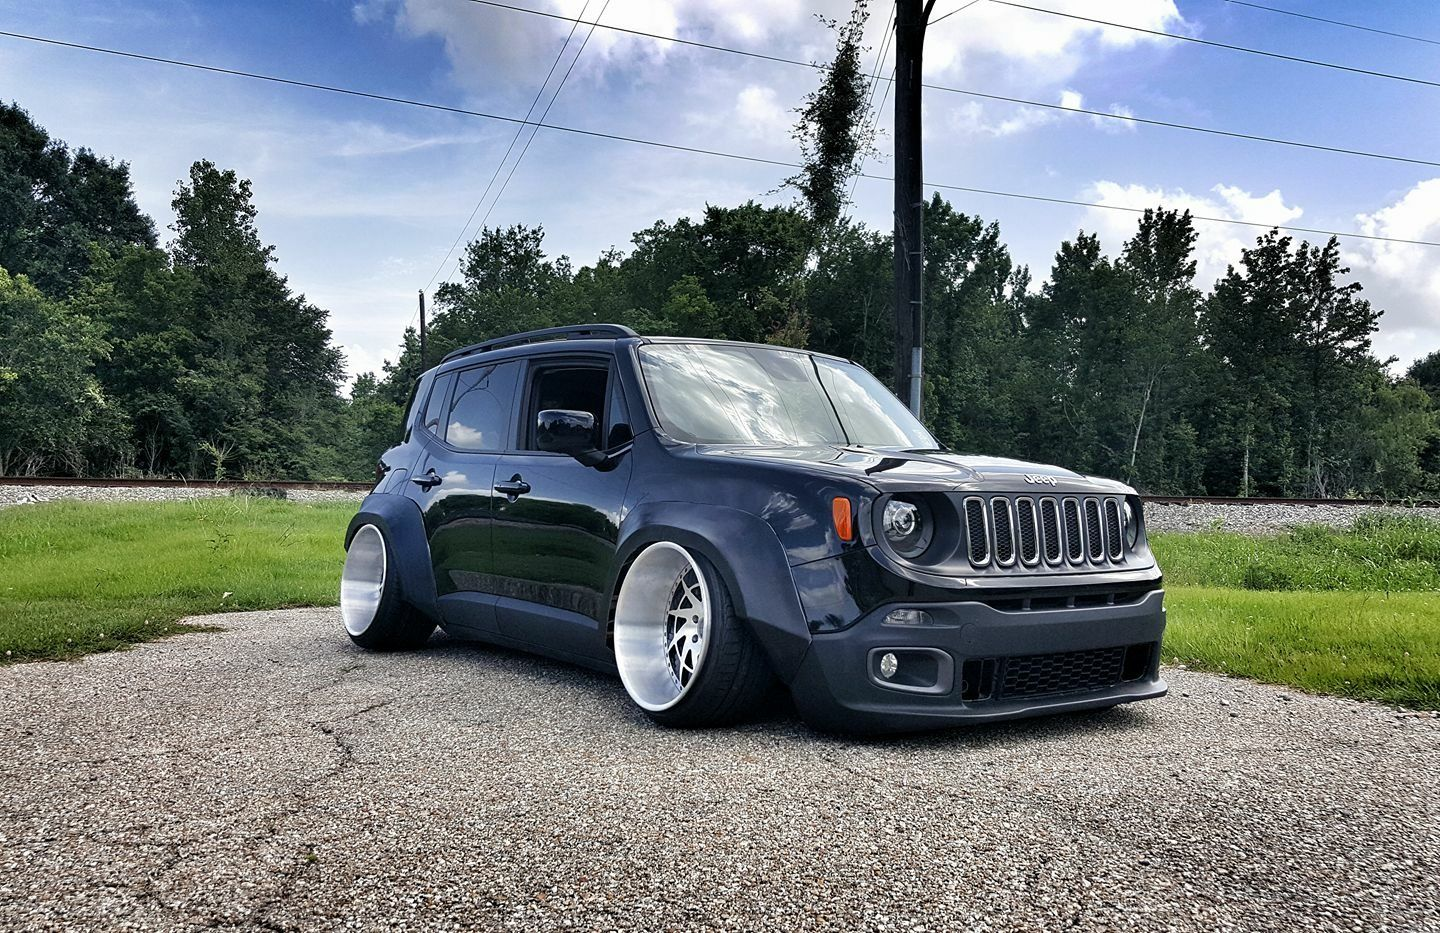 Lifted Jeep Renegade >> Jeep Renegade custom | Jeeps | Pinterest | Jeep renegade, Jeep and Jeep suv